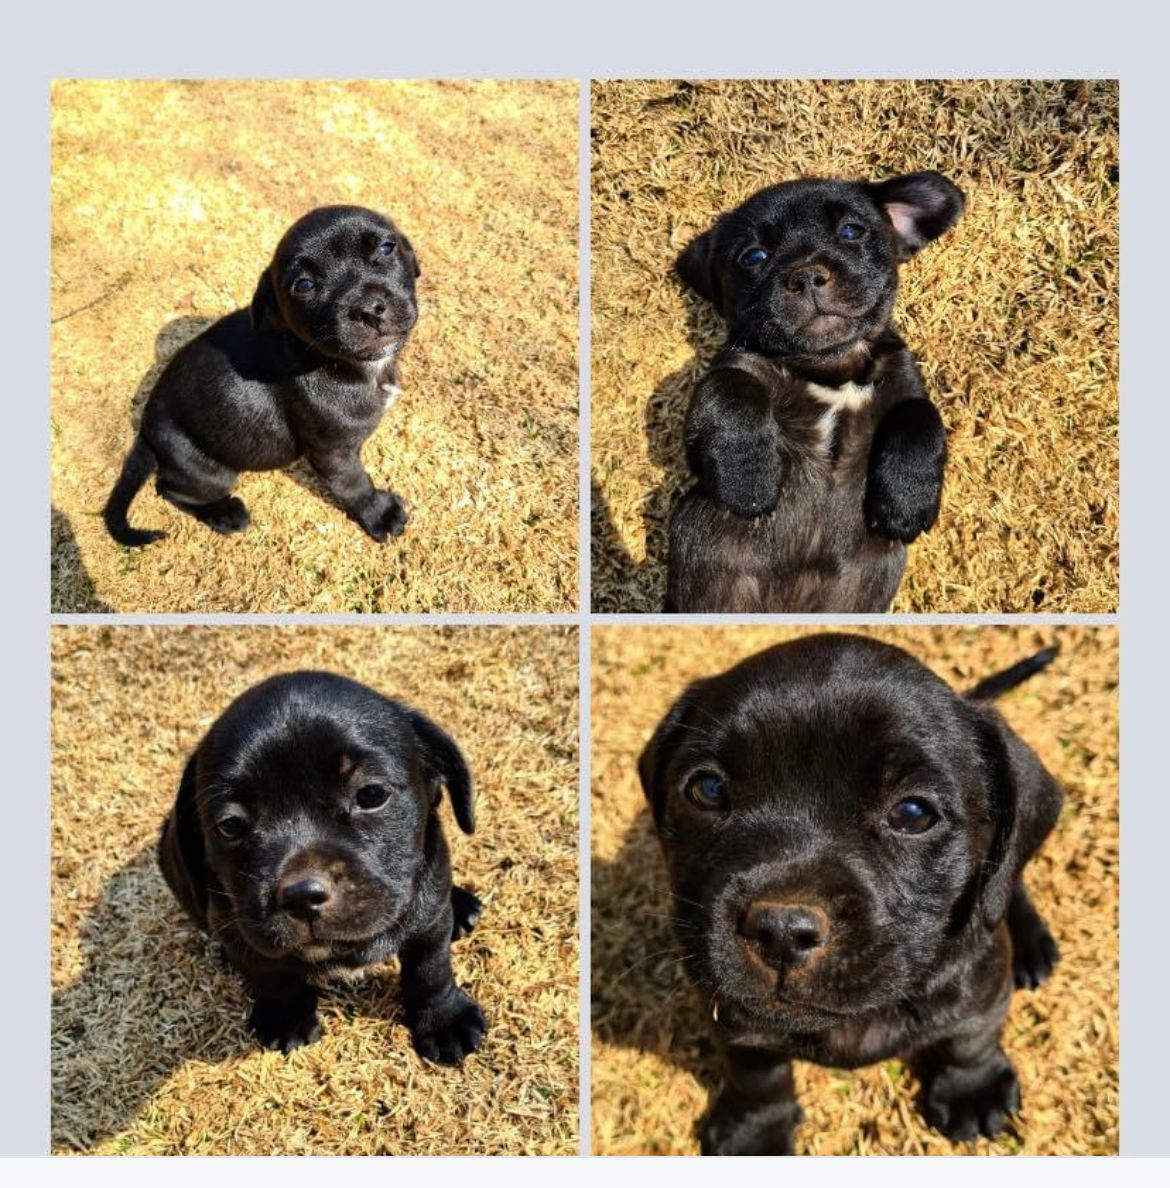 Boston Terrier Puppies in East Rand (21/08/2021)